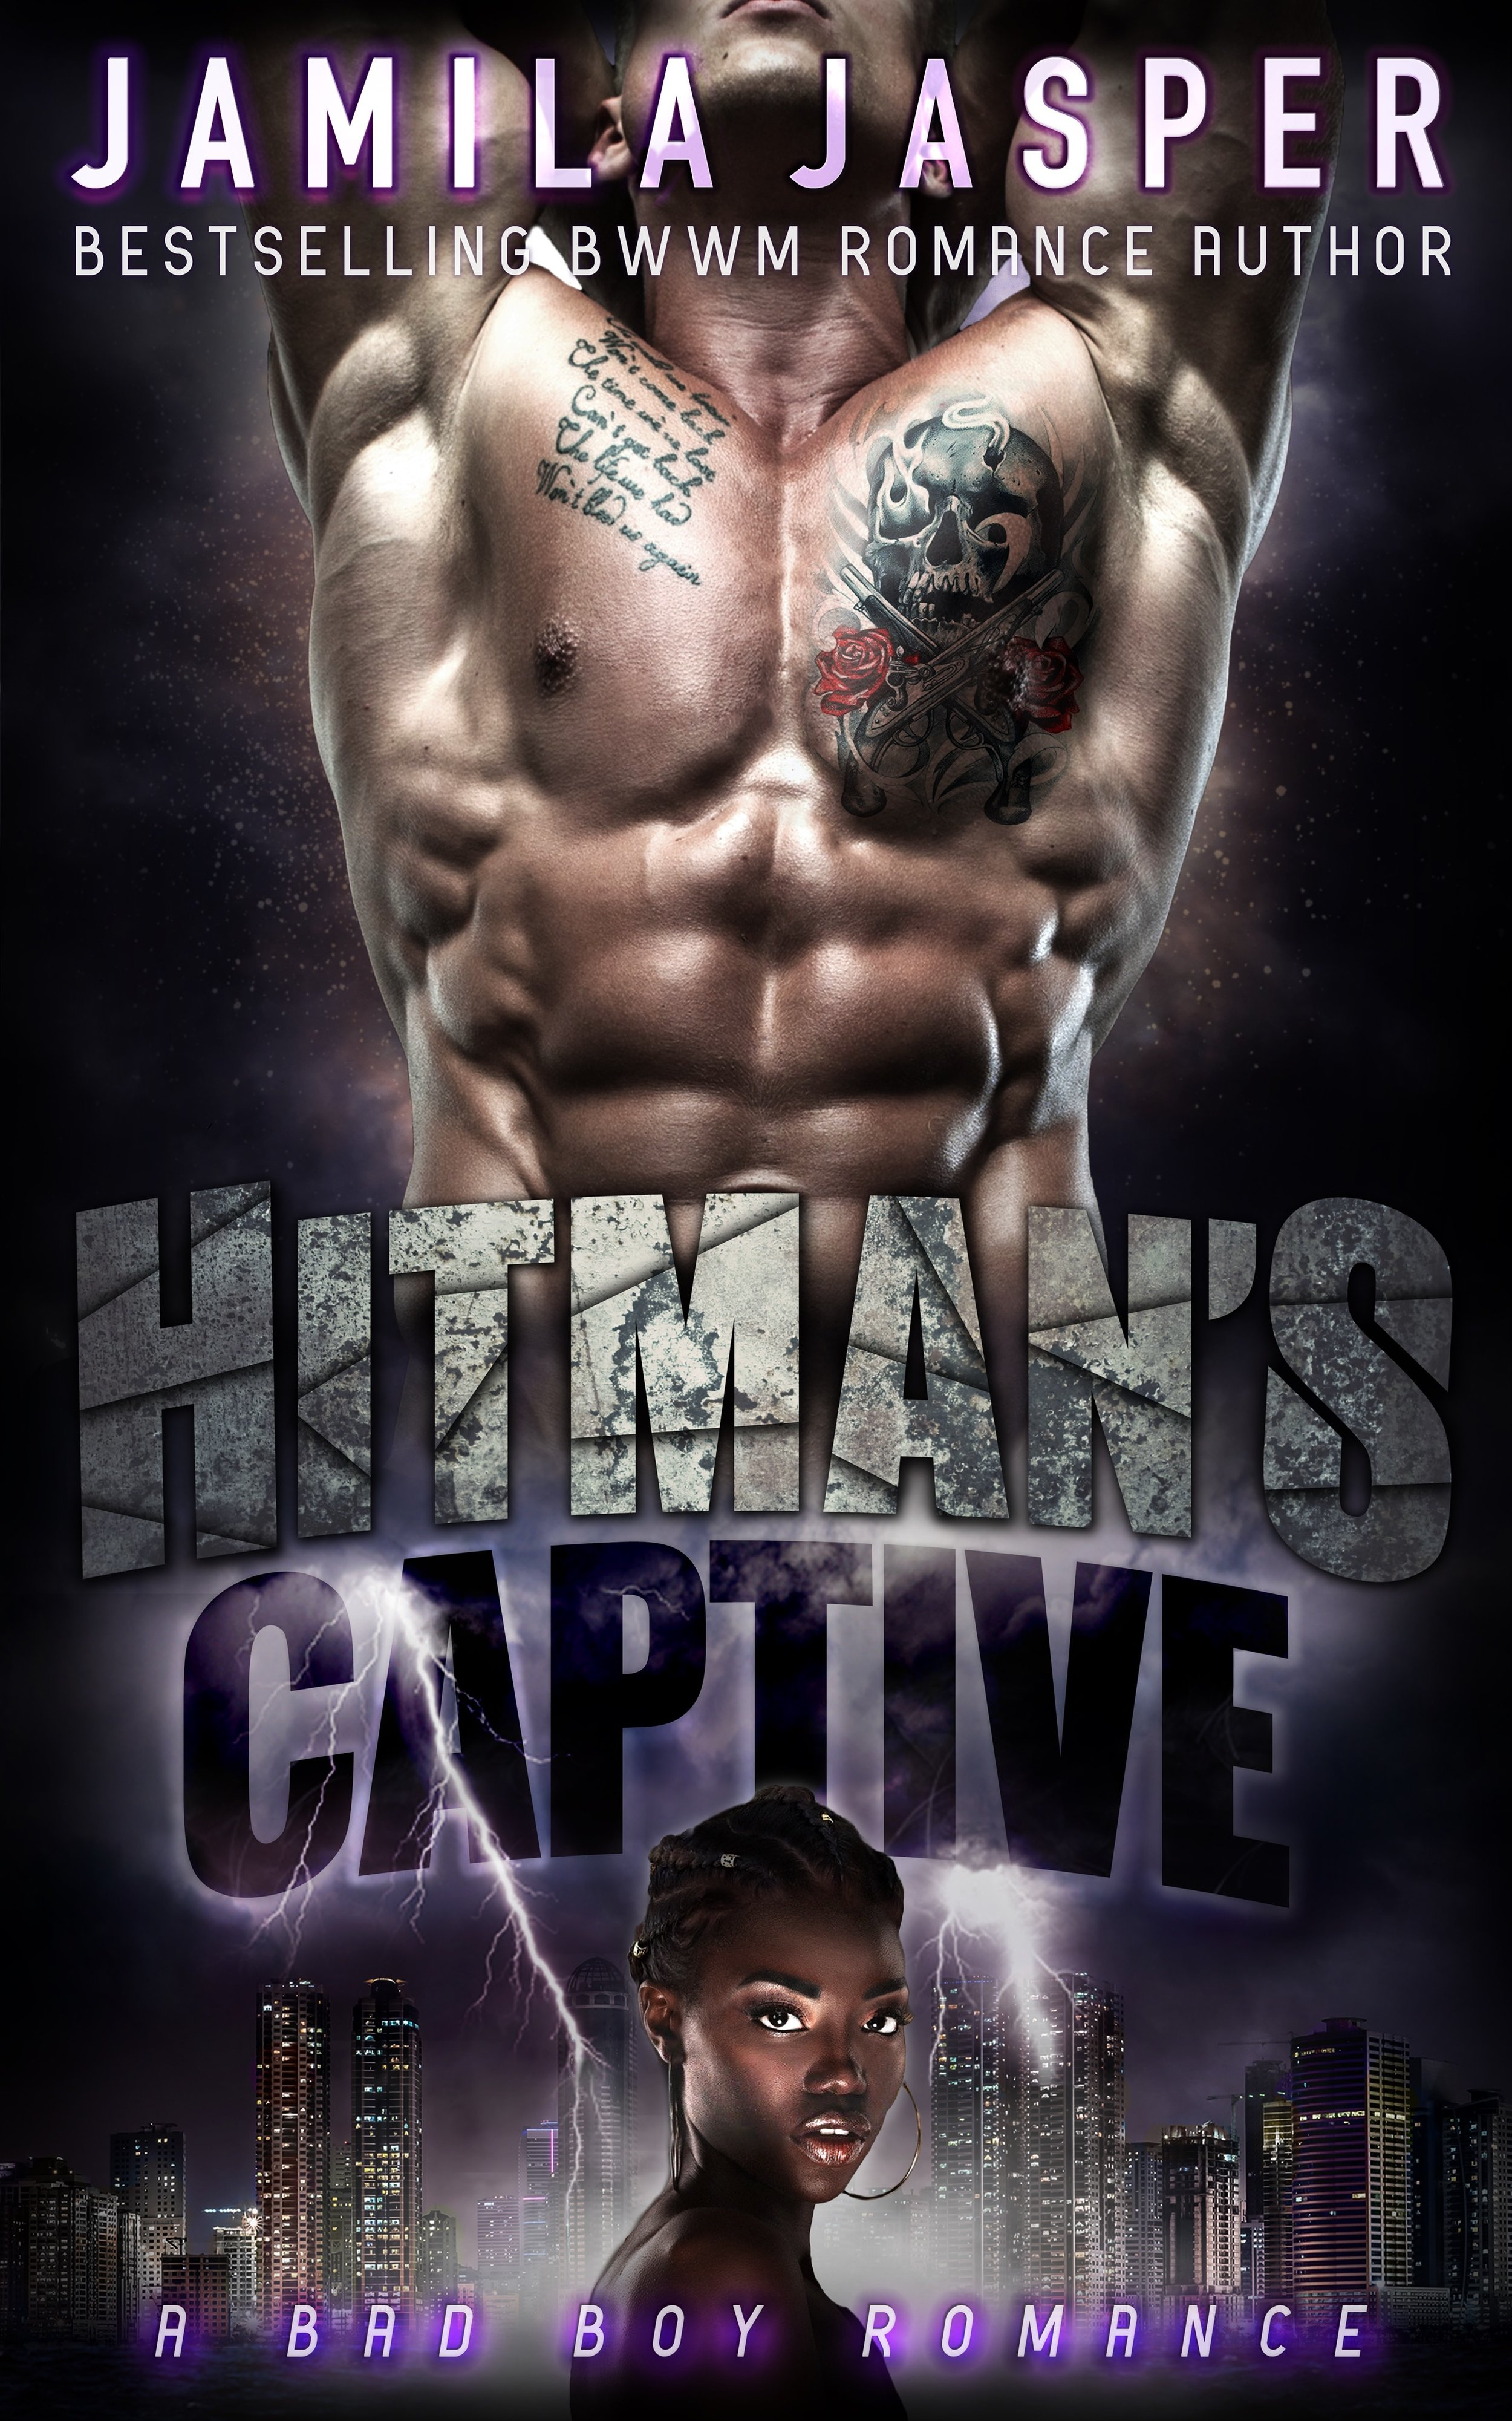 hitman's captive jamila jasper interracial romance dark romance story bad boy bwwm romance novels